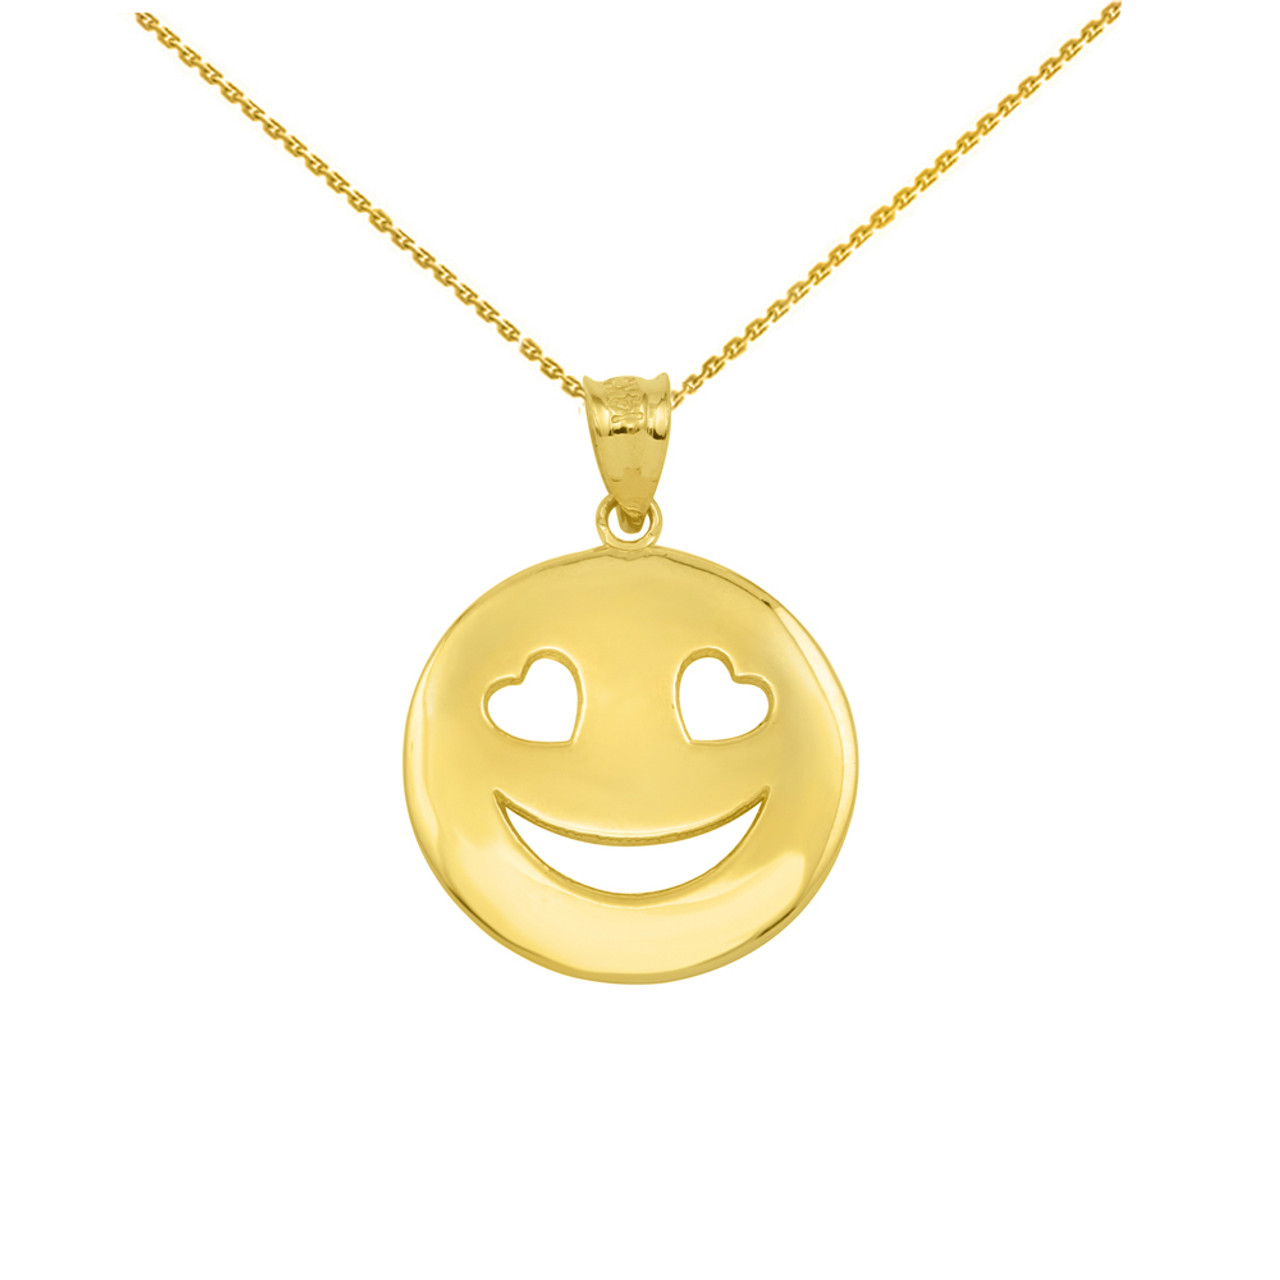 Yellow gold heart eyes smiley face pendant necklace aloadofball Image collections